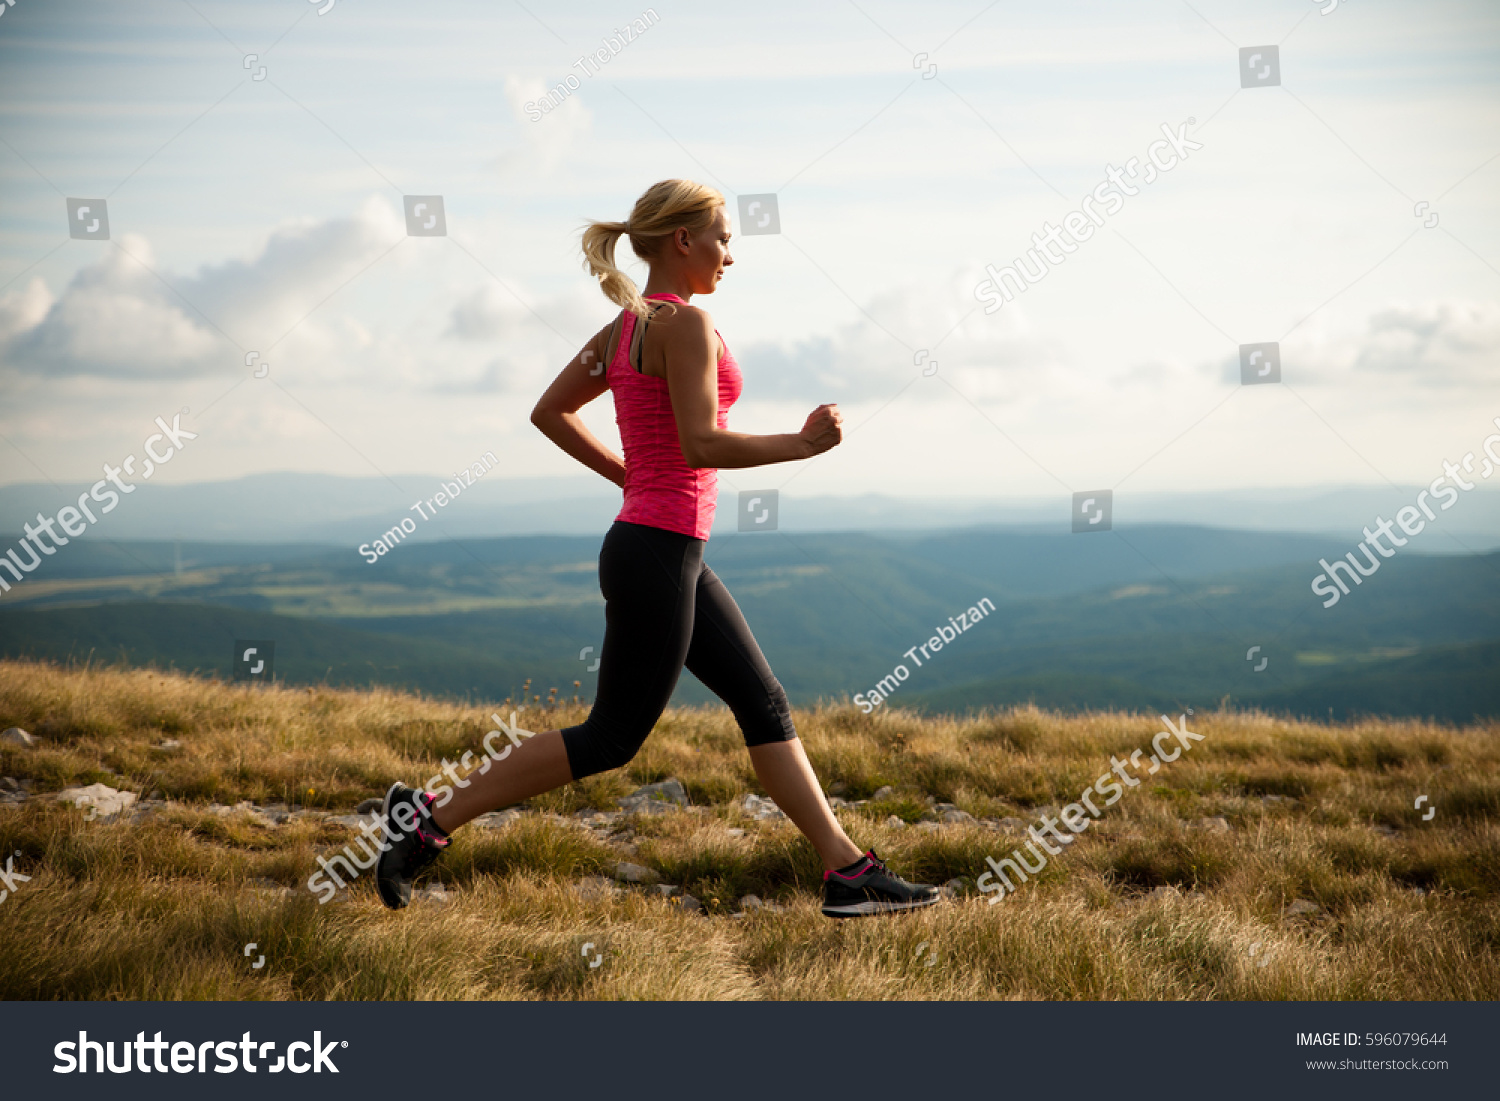 runner - woman runs cross country on a path in early autumn #596079644